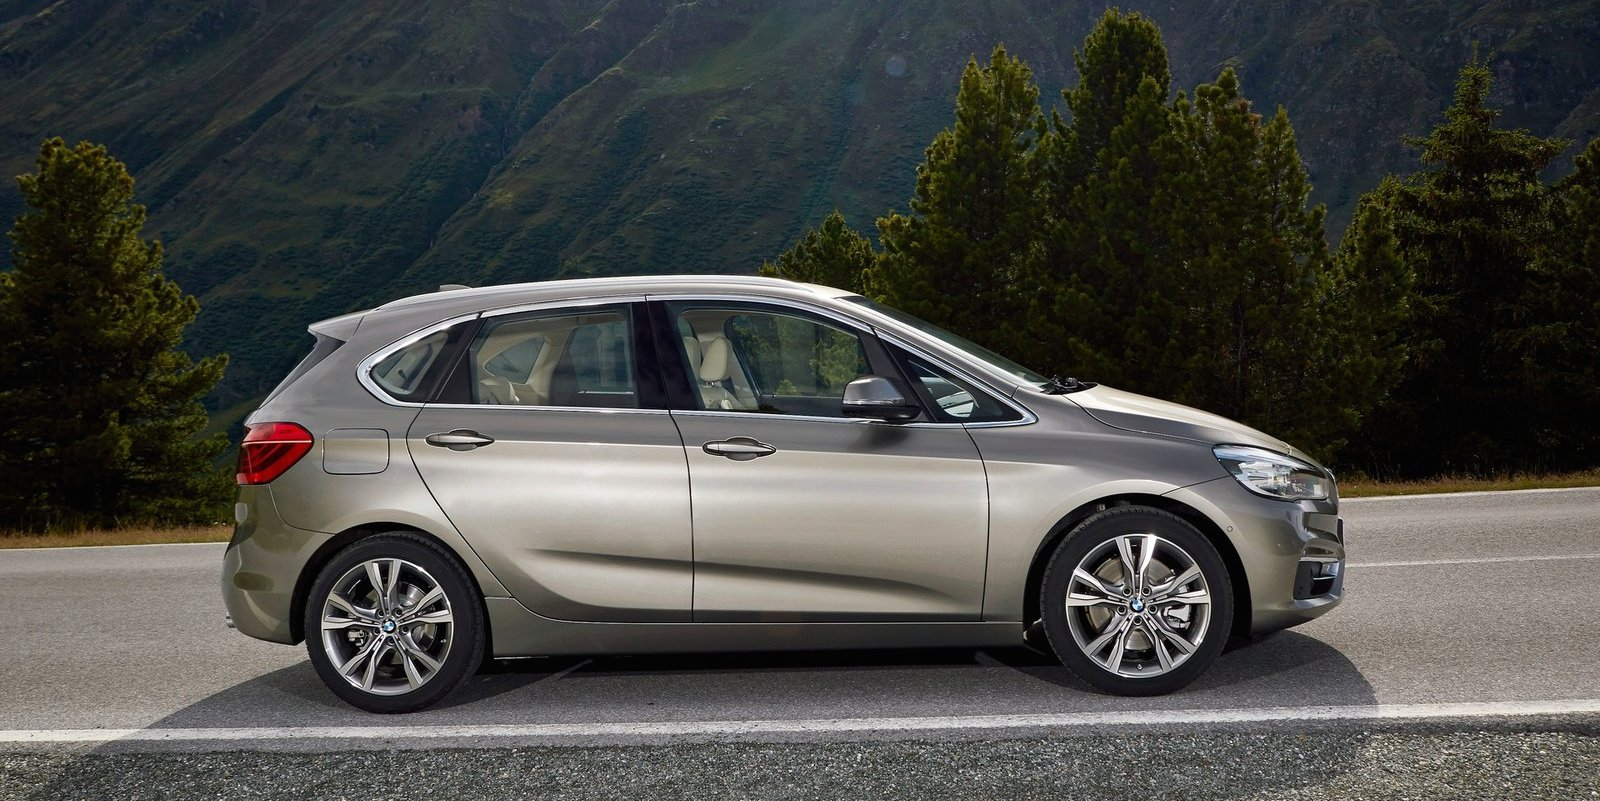 BMW 2 series Active Tourer 216d 2014 photo - 8